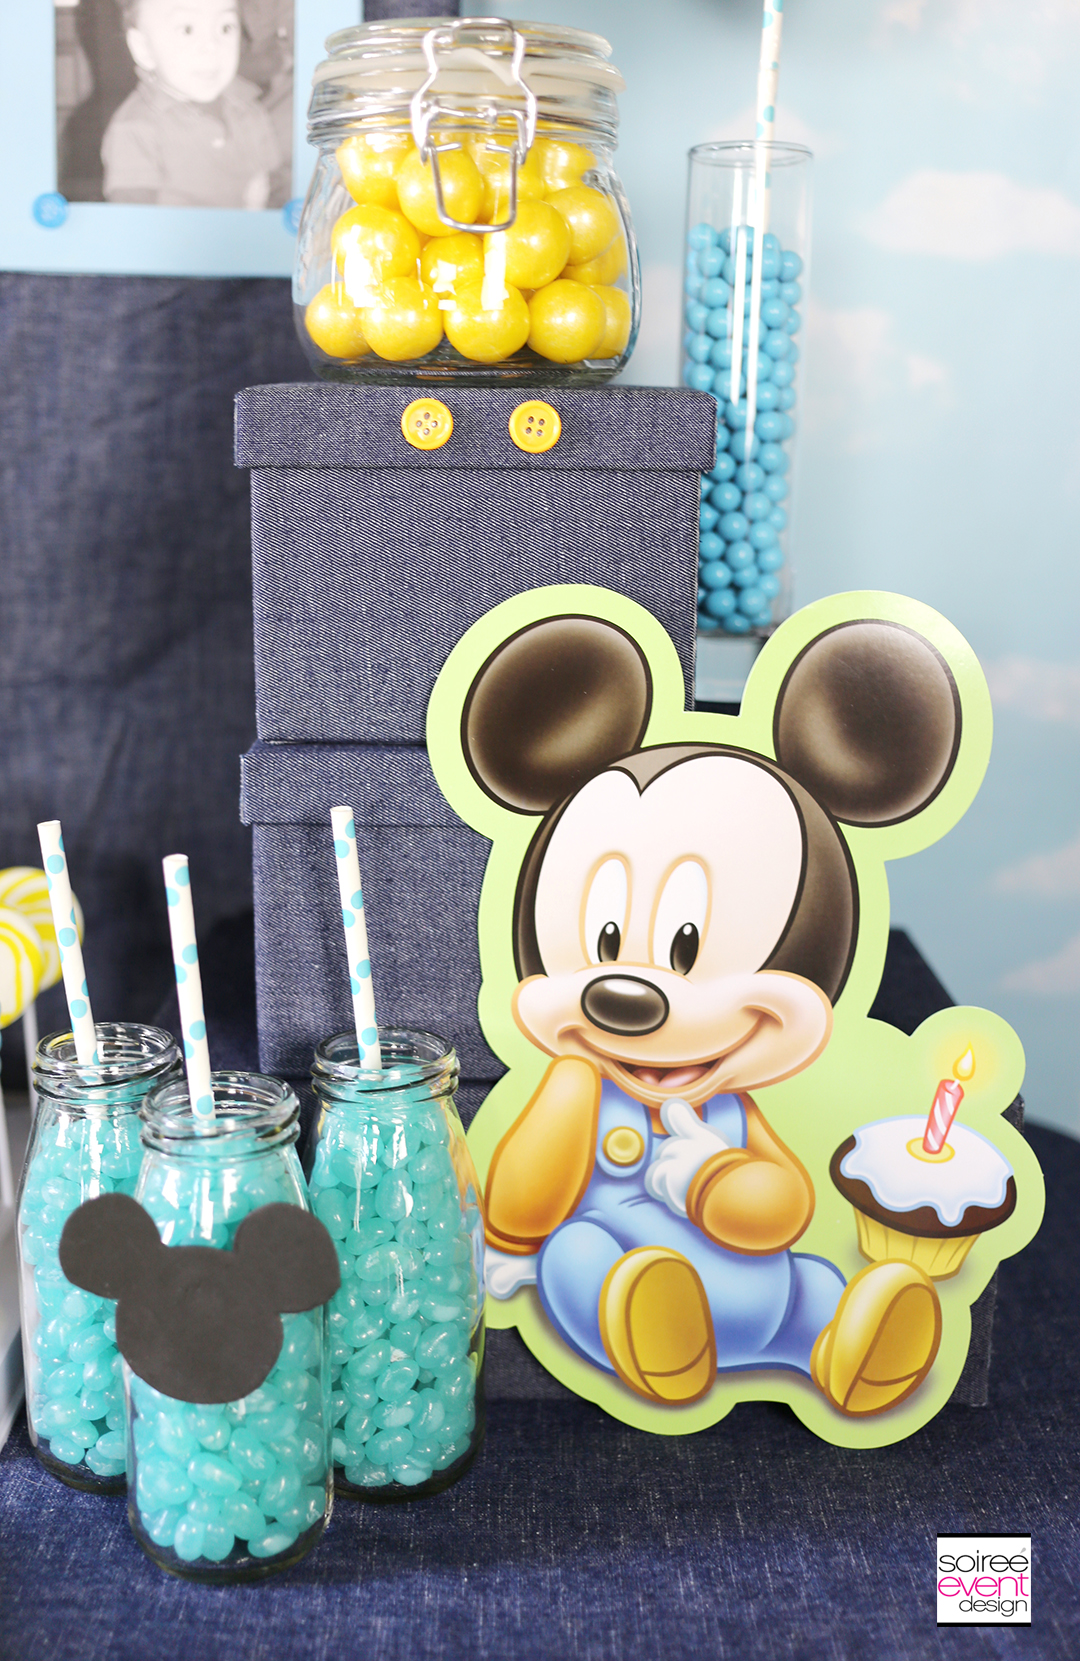 Mickey Mouse First Birthday Party Ideas - Soiree Event Design